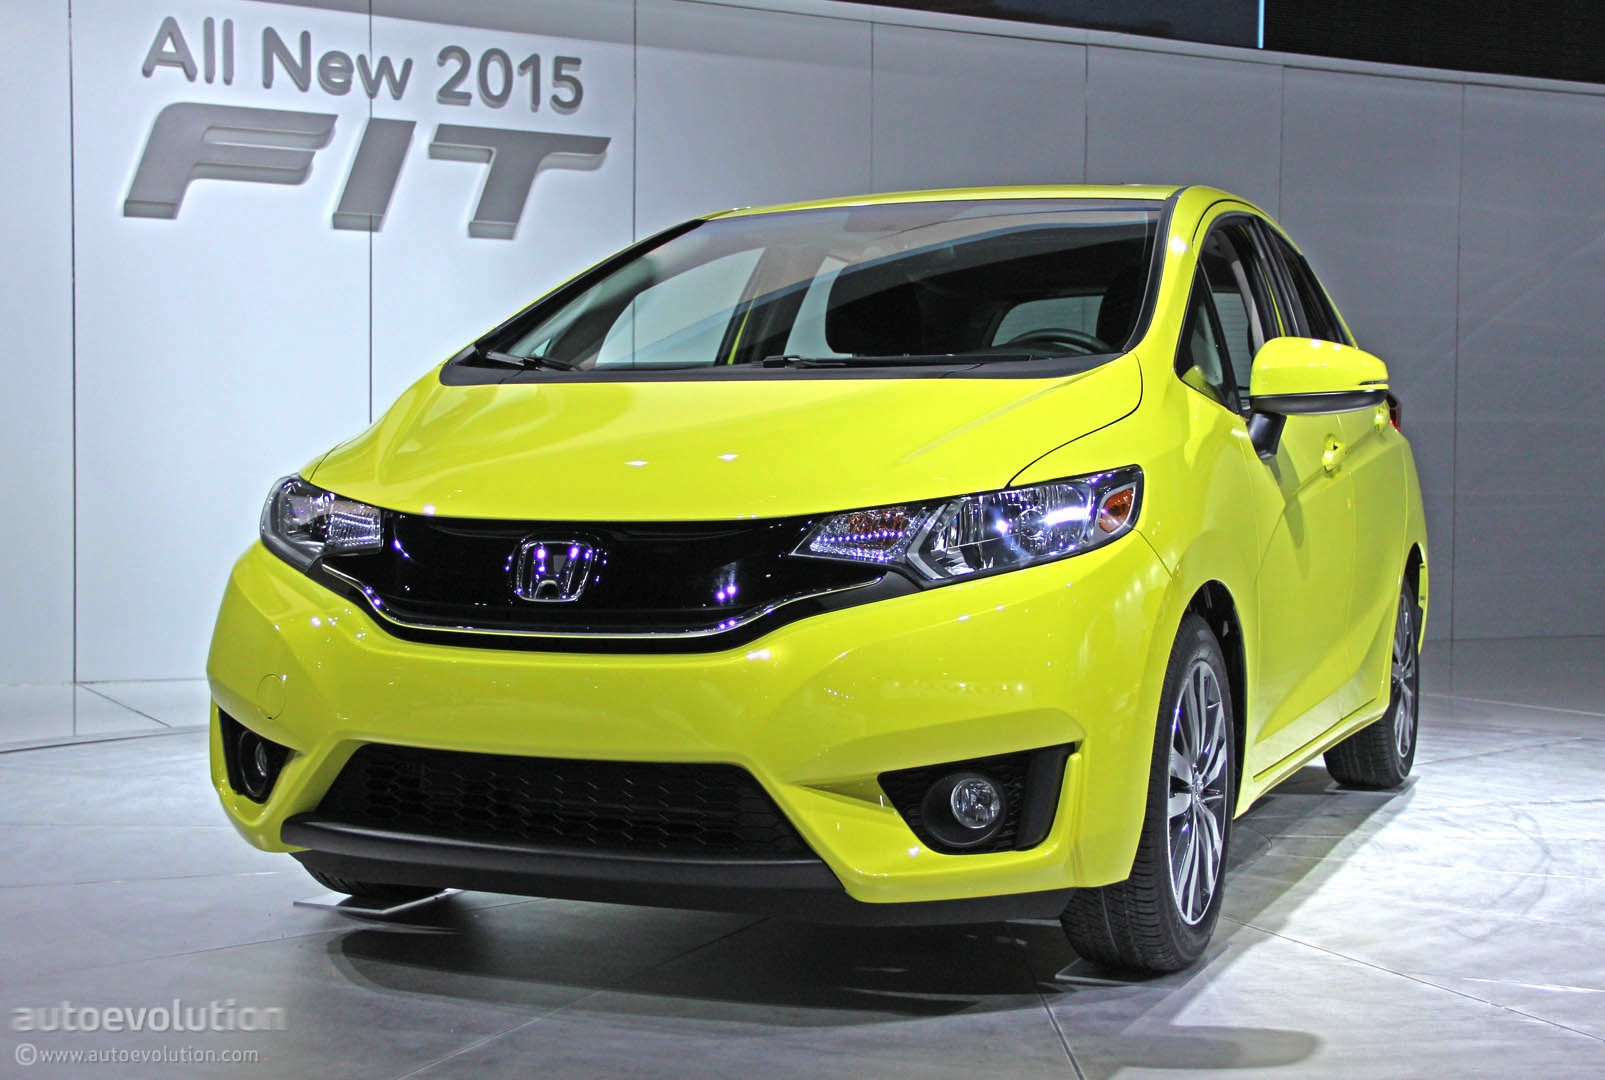 2015 Honda Fit Is a Cool New Urban Car for $15,525